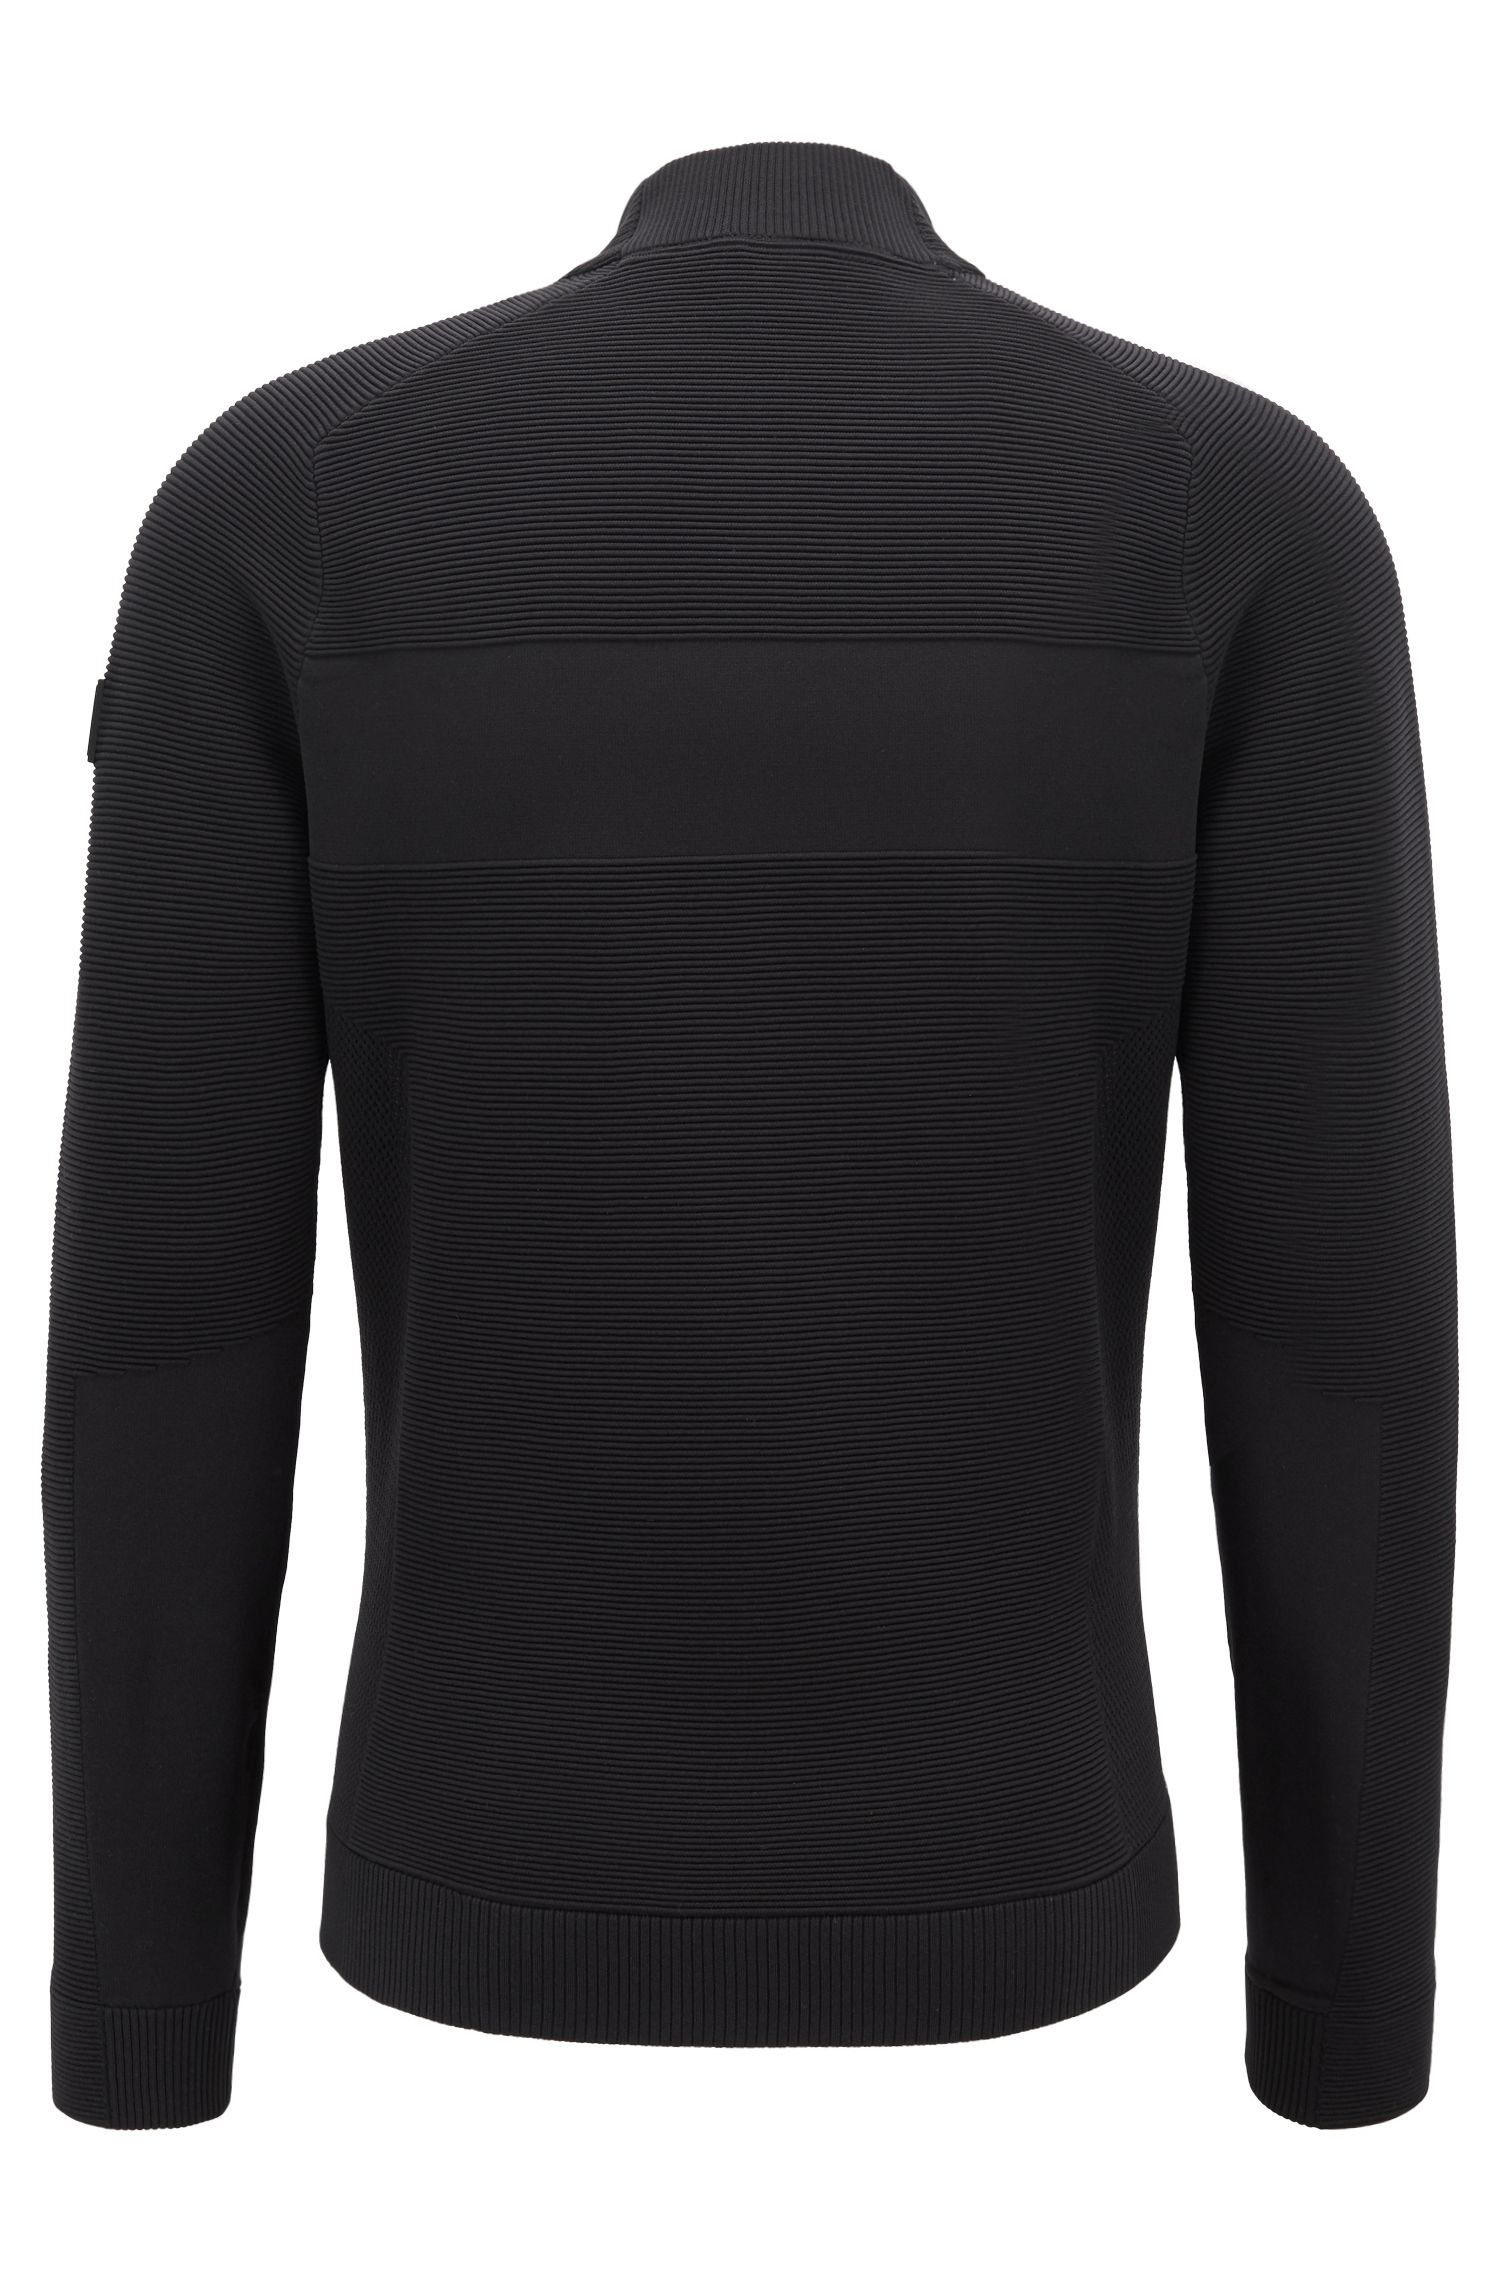 Knitted sweater with centre zip and chest pocket, Black